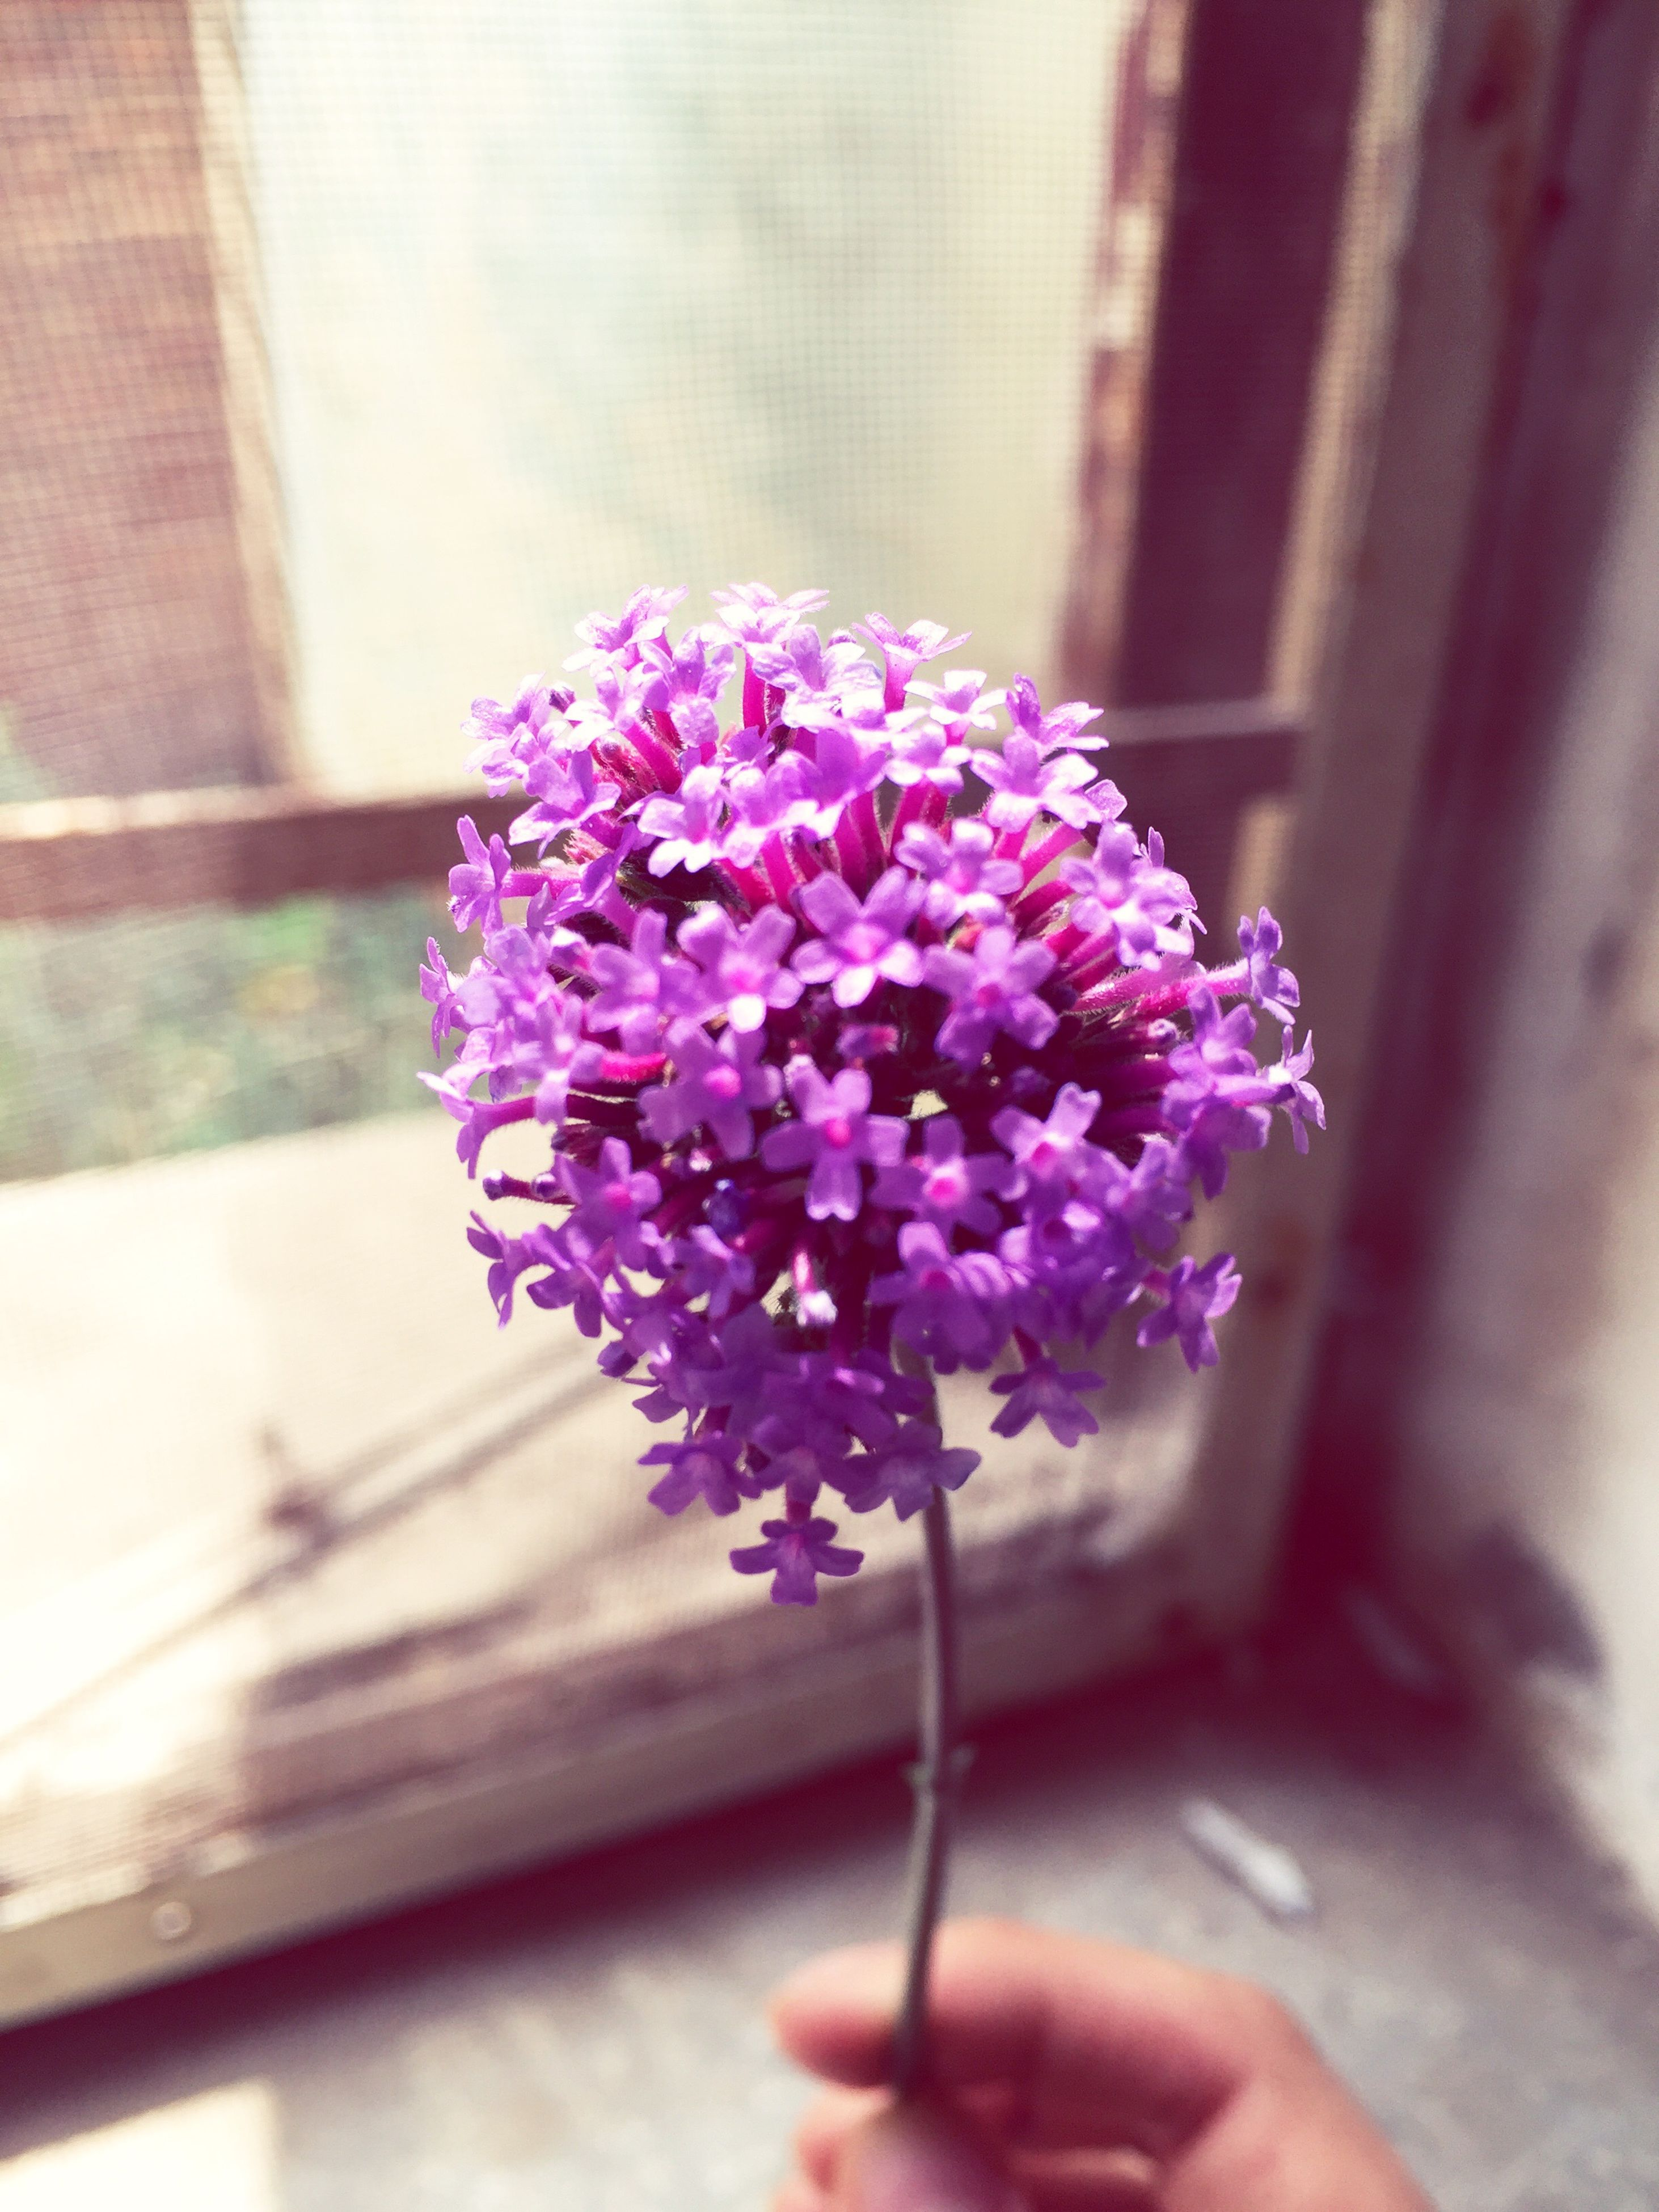 flower, freshness, fragility, pink color, petal, flower head, indoors, close-up, growth, focus on foreground, potted plant, bunch of flowers, beauty in nature, vase, pink, nature, purple, table, plant, blossom